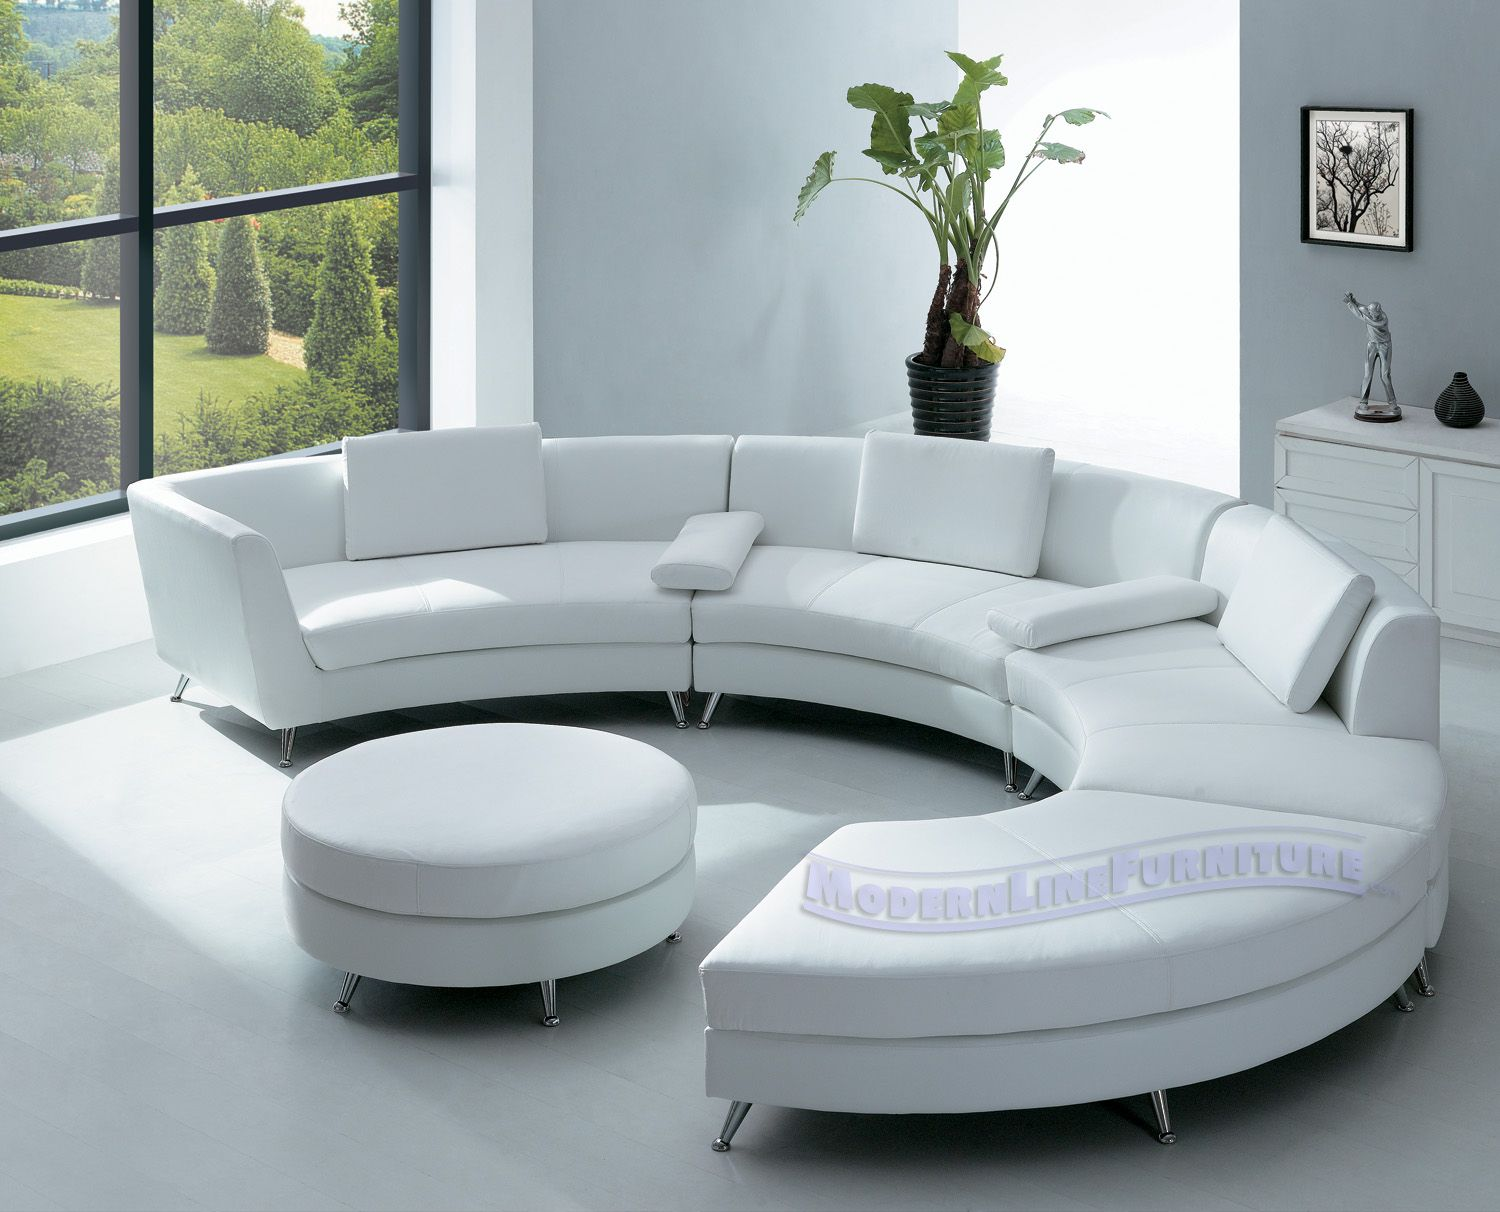 Circular Couches Living Room Furniture Pictures Of Traditional With Elegant Half Circle Sofa Home Interior Designs